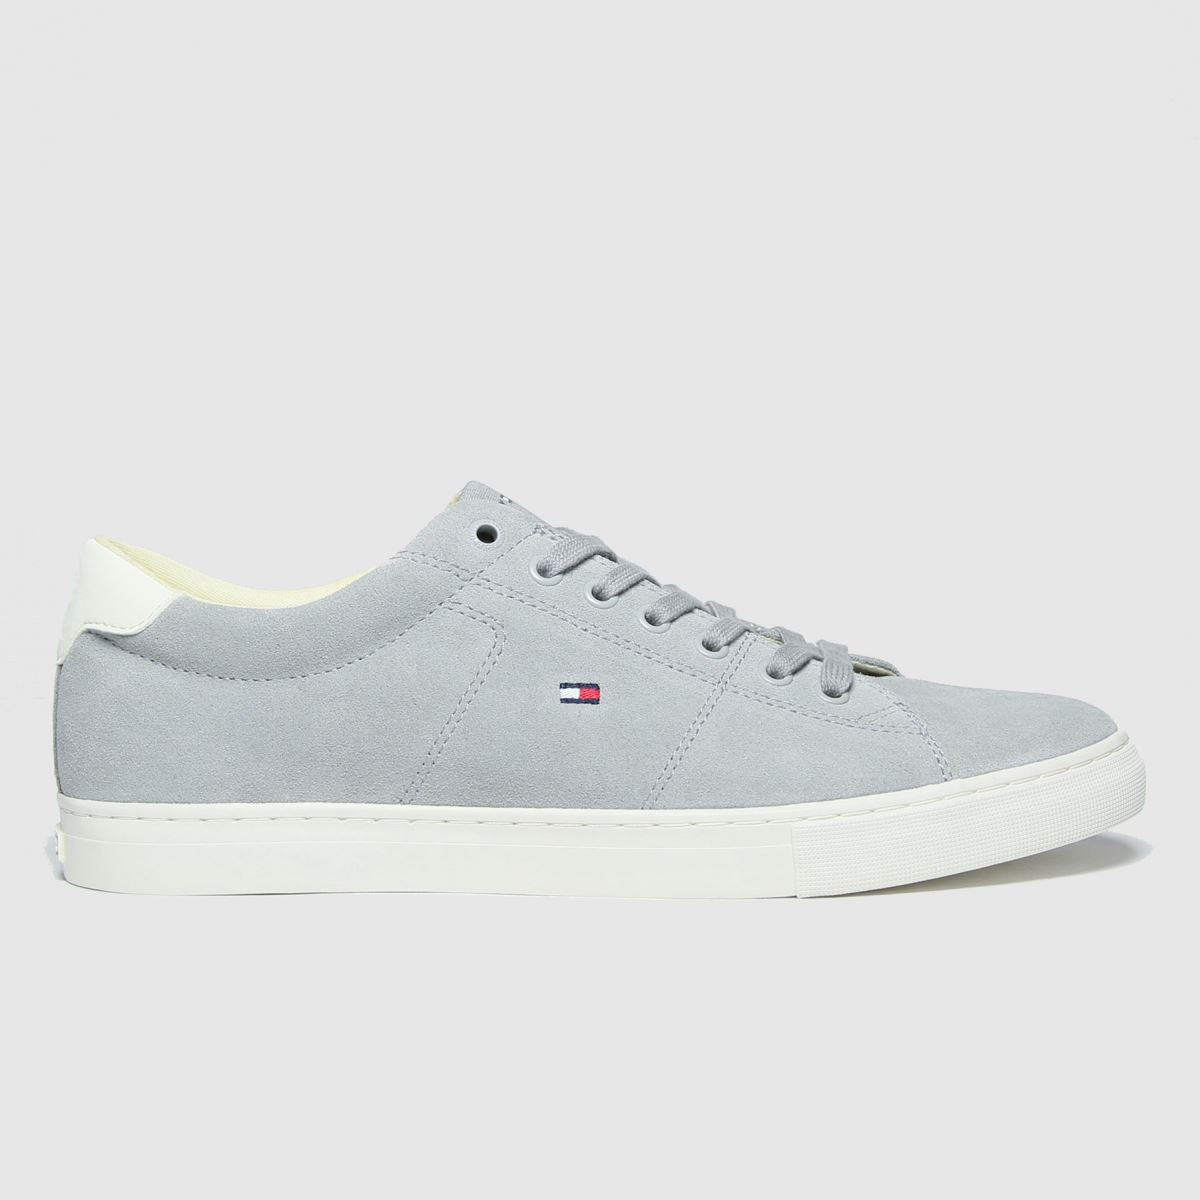 Tommy Hilfiger Grey Suede Vulc Sneaker Trainers